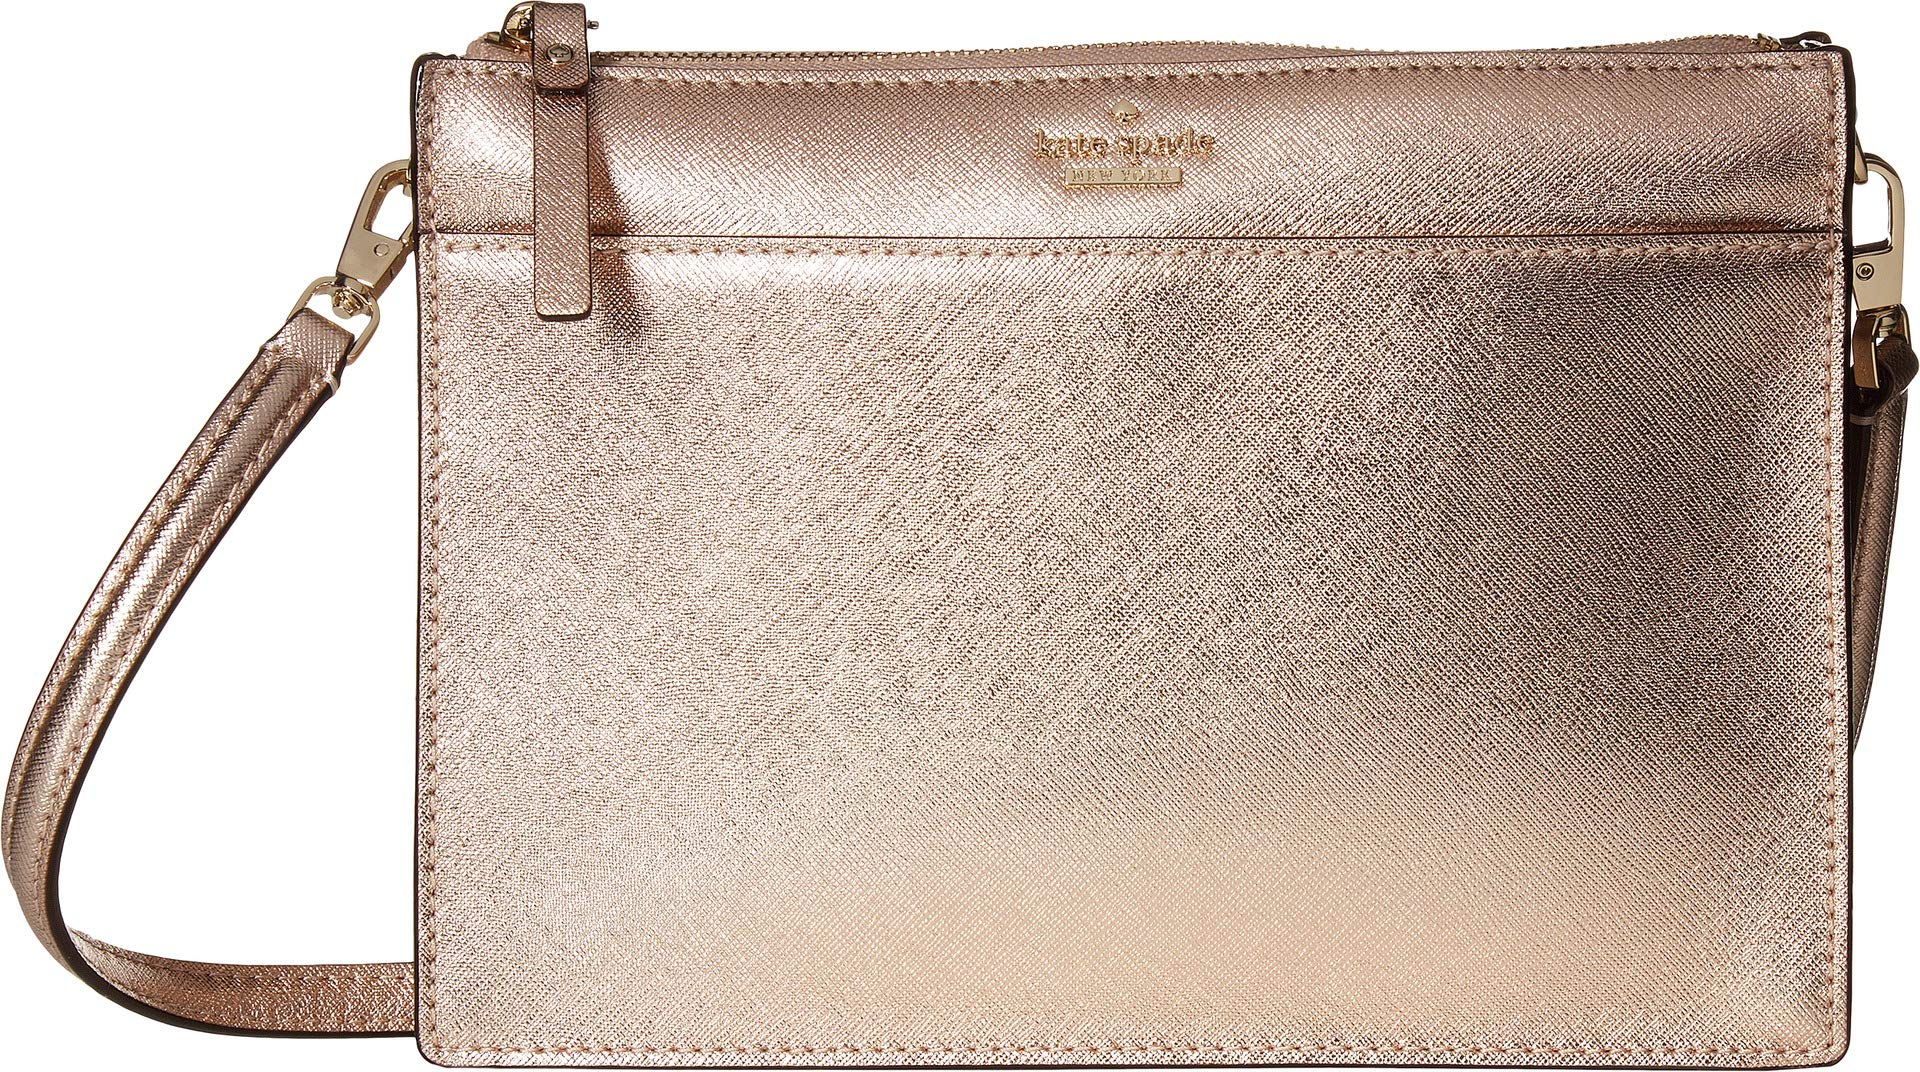 Kate Spade New York Women's Cameron Street Clarise Rose Gold 1 One Size